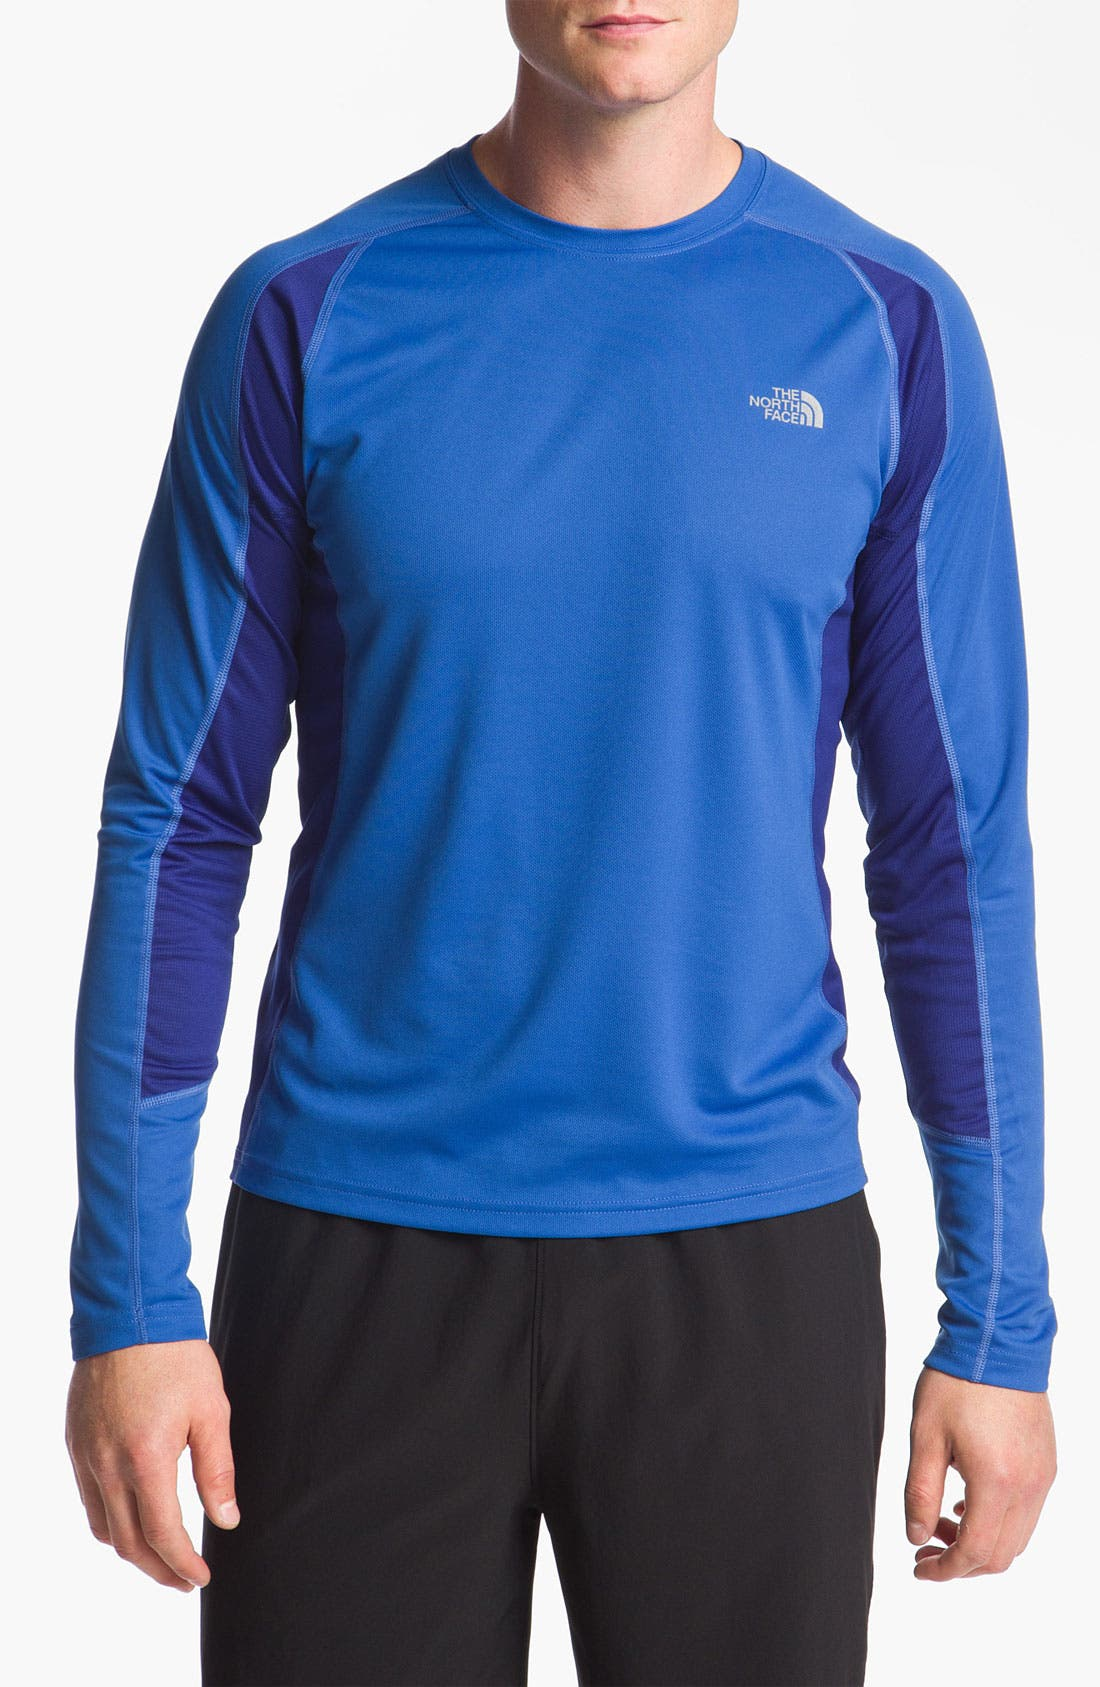 Alternate Image 1 Selected - The North Face Performance T-Shirt